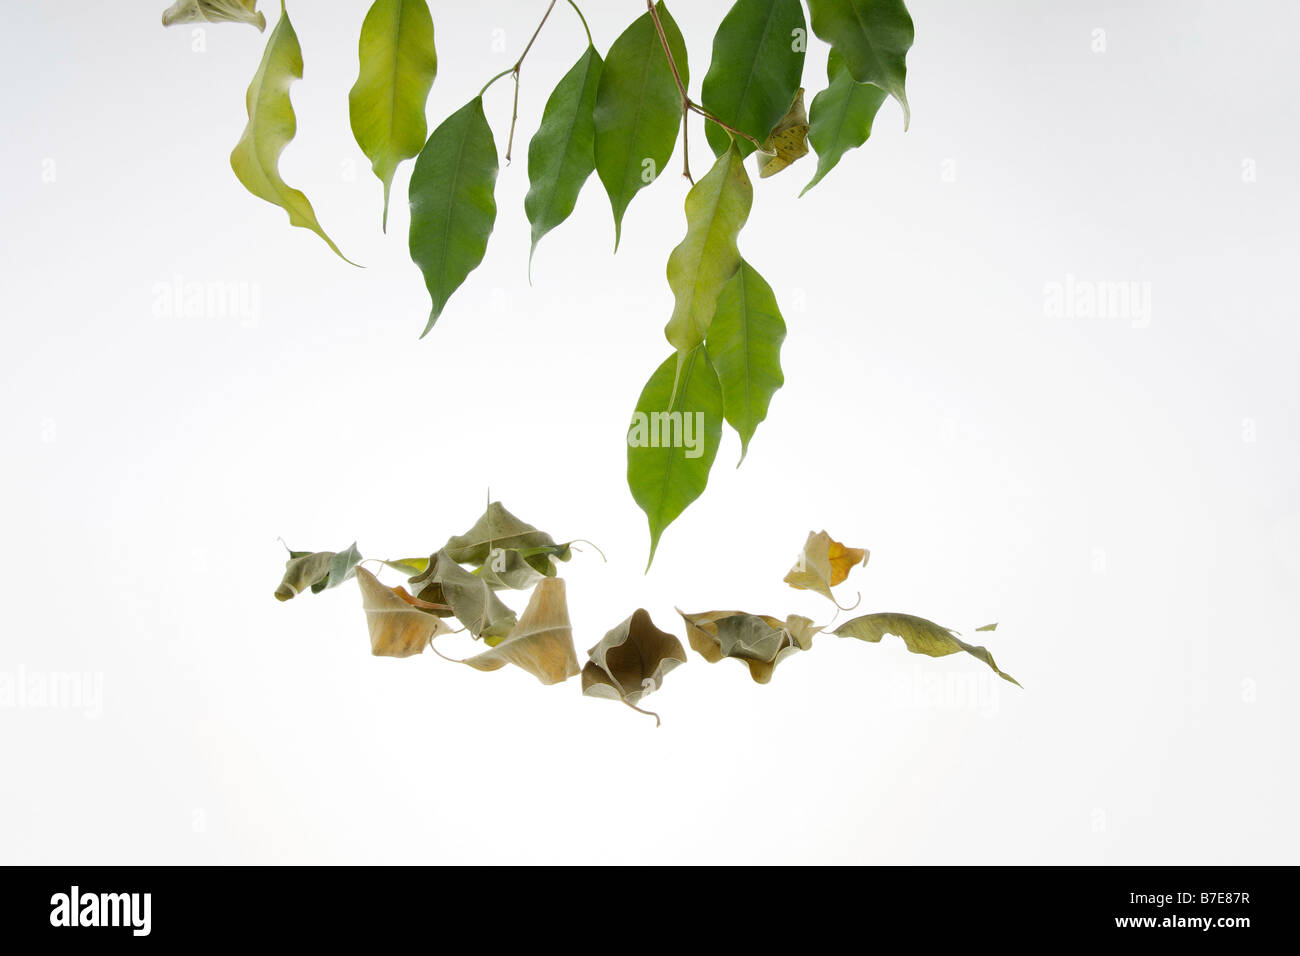 Clip image drying leaves of potted fig tree ficus benjaminii stock clip image drying leaves of potted fig tree ficus benjaminii symbolism of green thumb or green fingers biocorpaavc Gallery